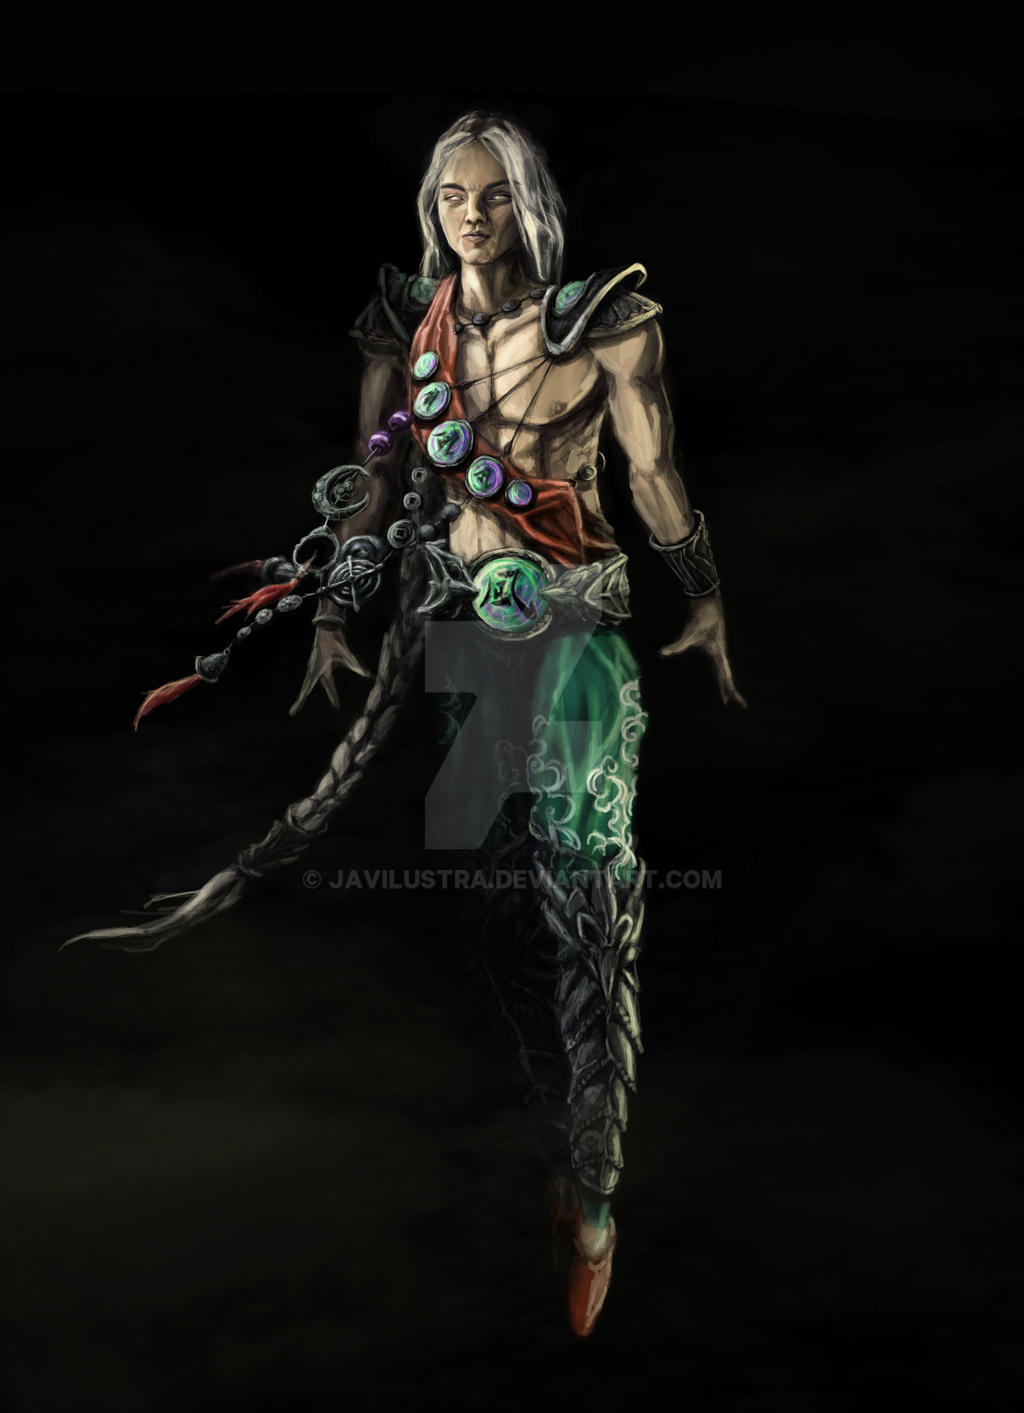 Character Design Mortal Kombat : Fujin mortal kombat by javilustra on deviantart